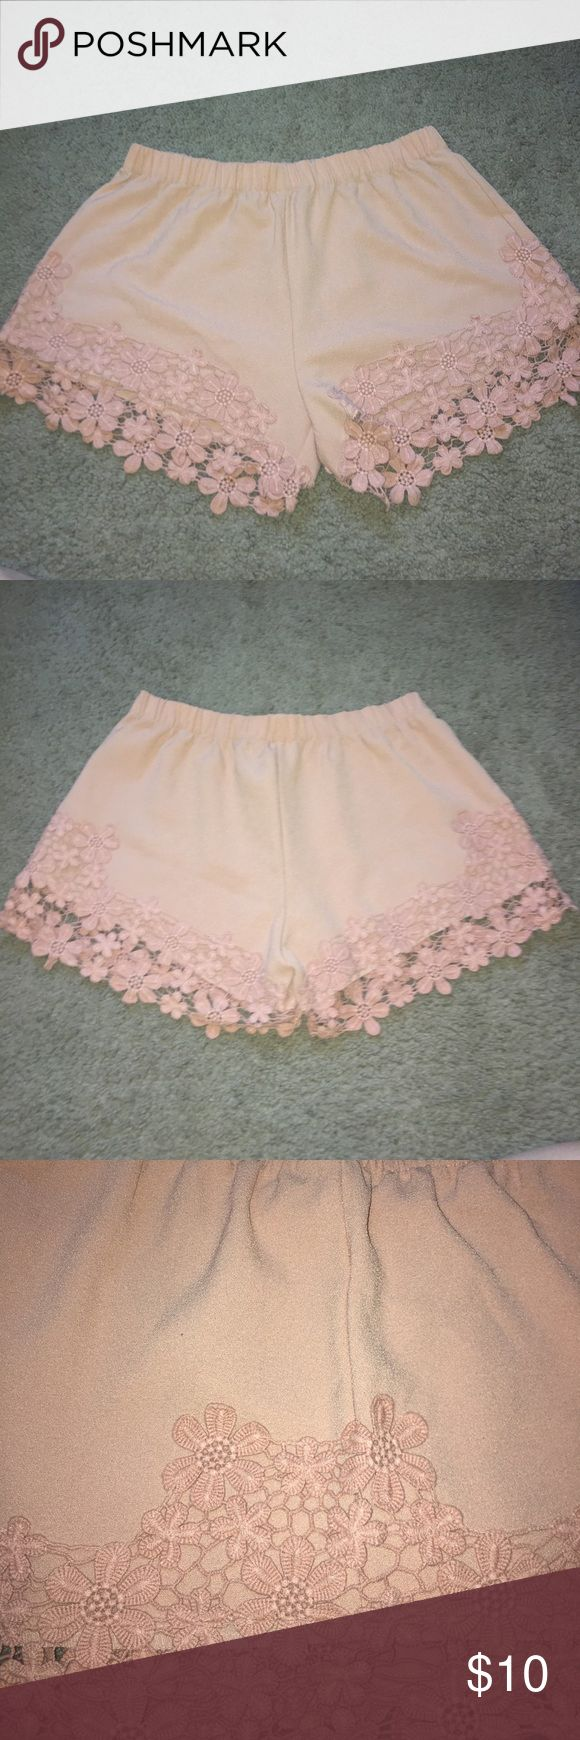 Nude shorts Nude shorts with floral lace on the bottom and side. Slightly worn without tags Shorts